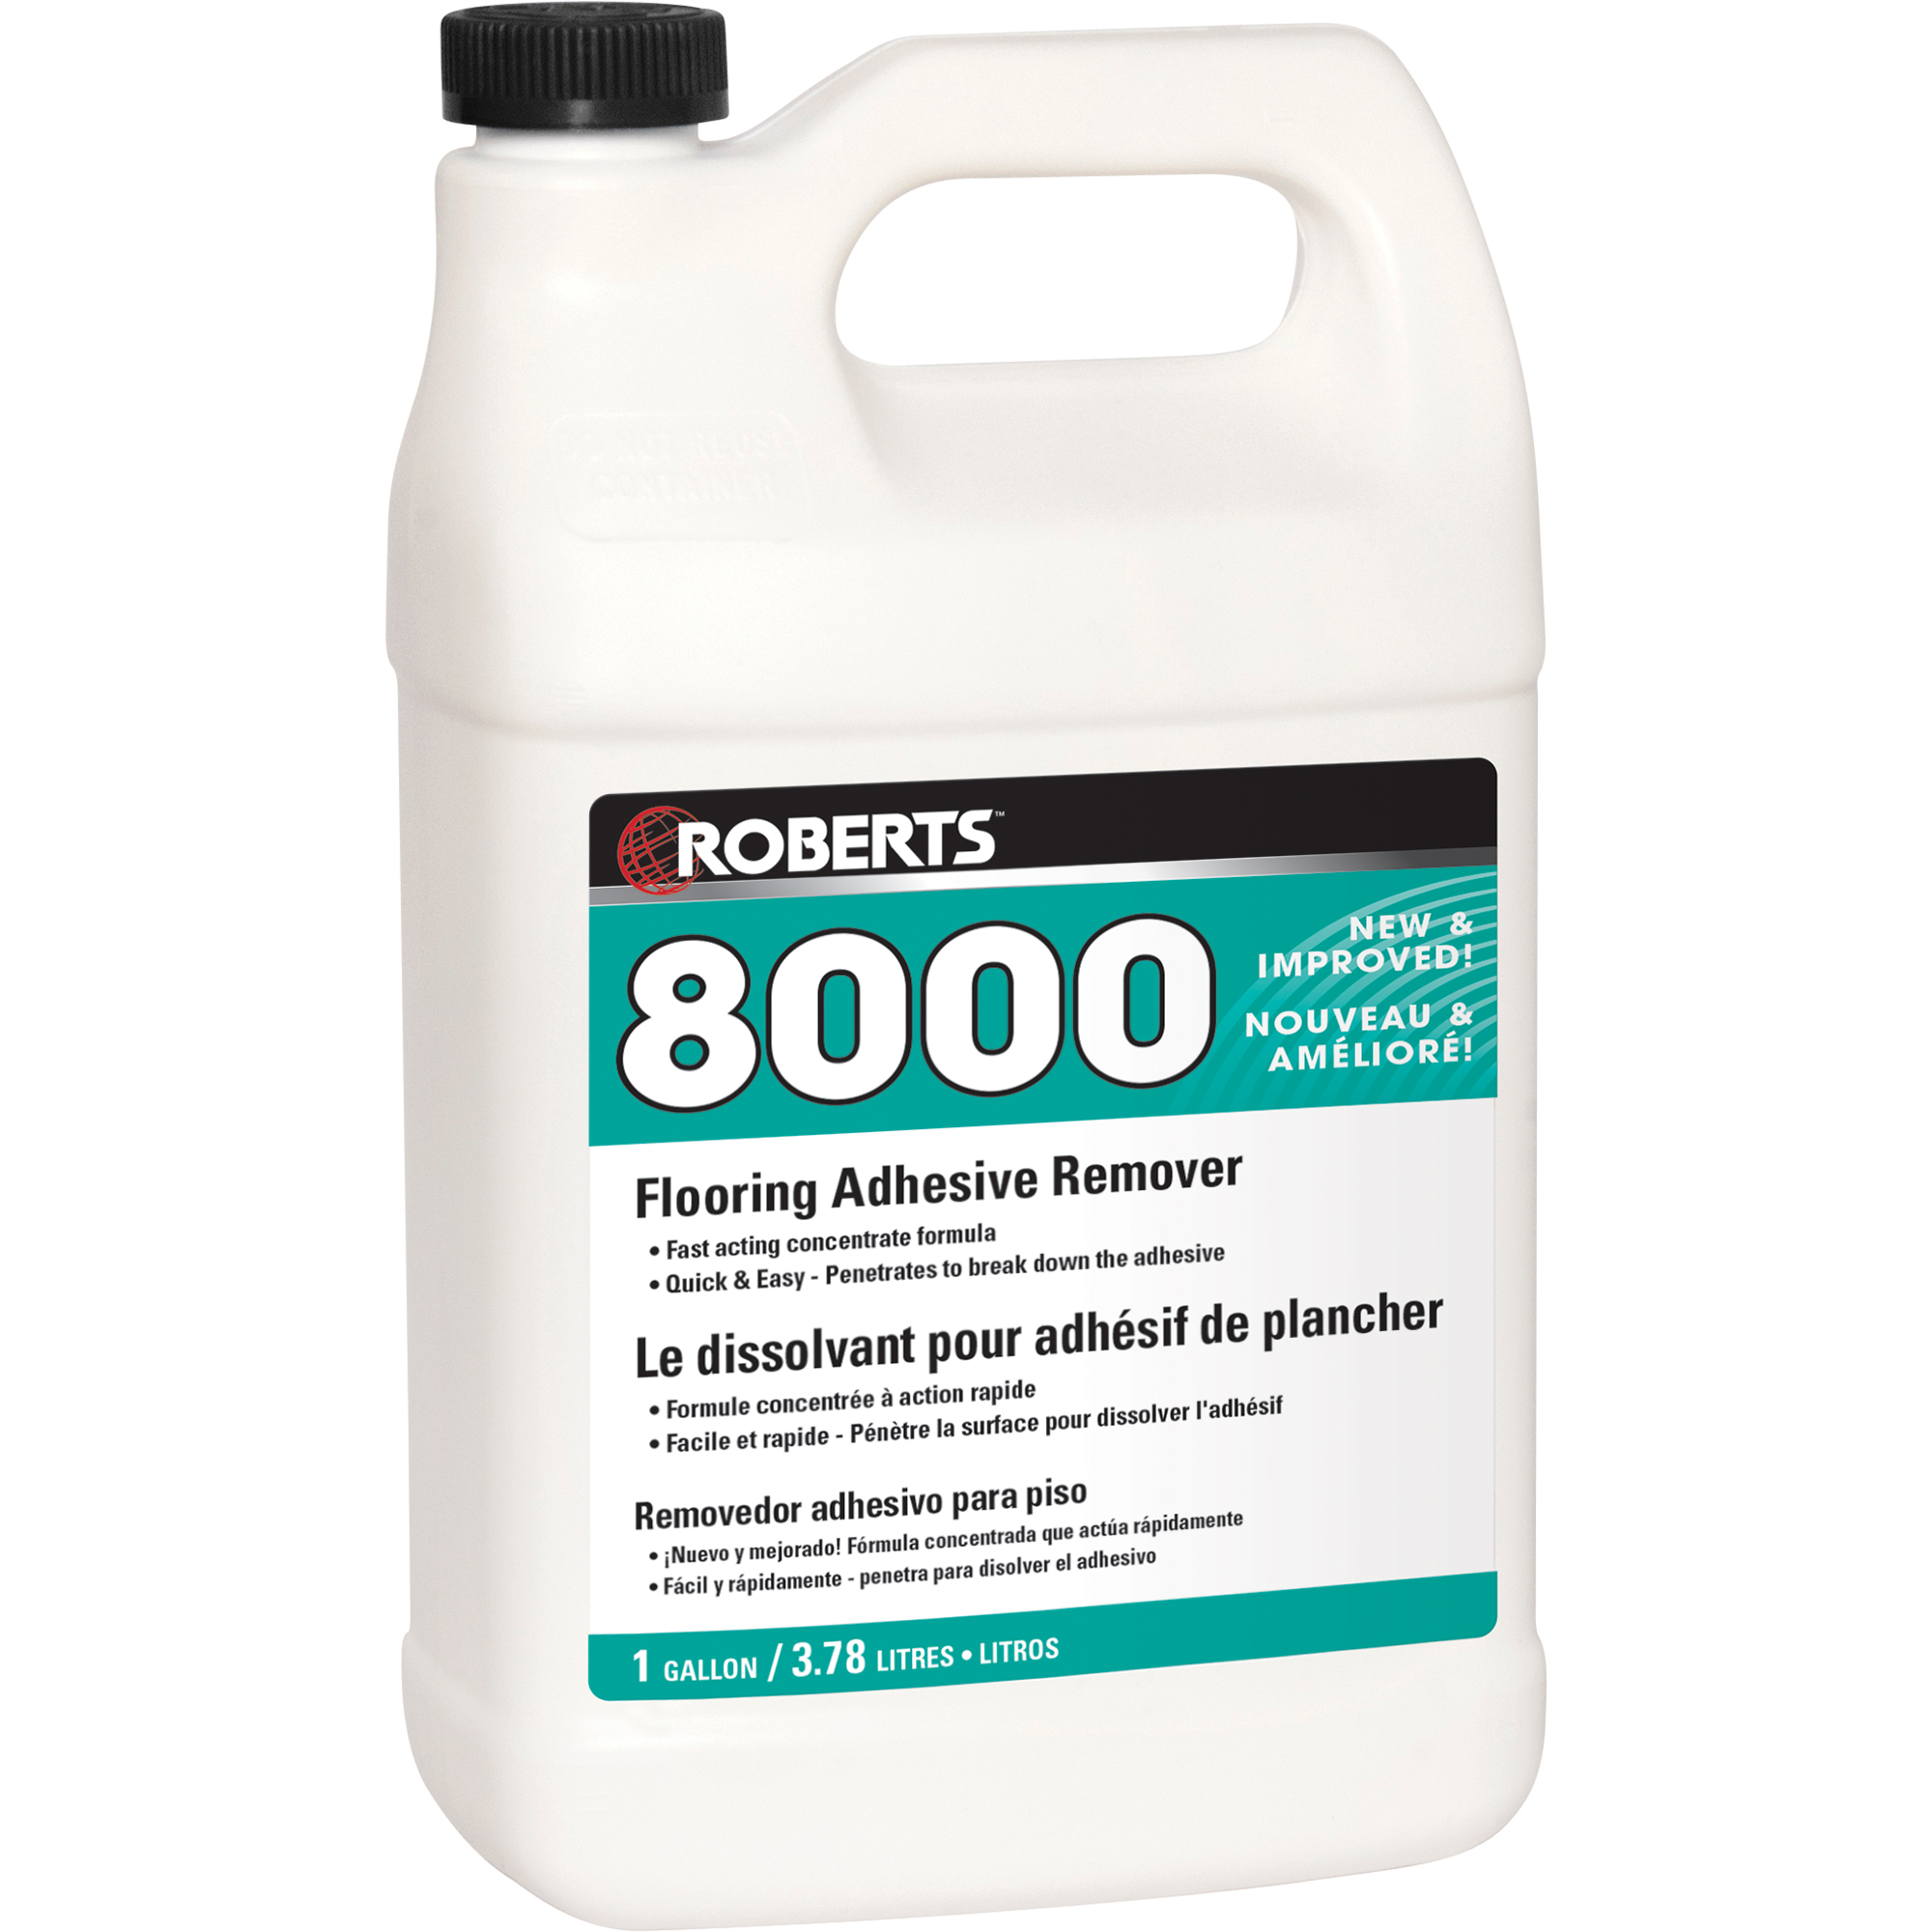 Flooring Adhesive Remover